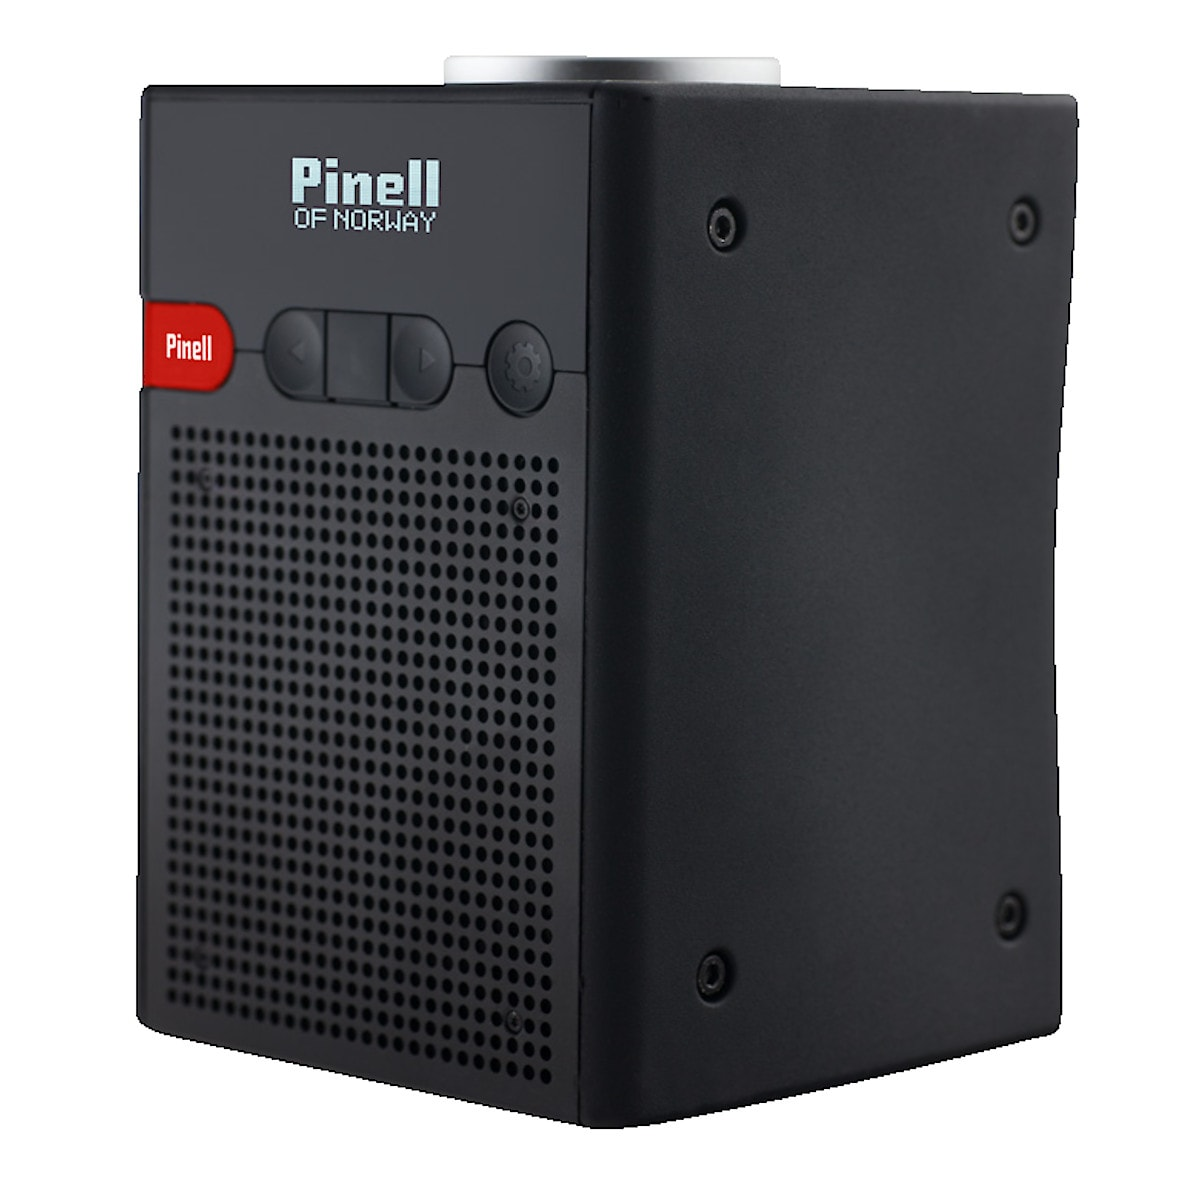 Pinell Go+ DAB+radio med Bluetooth